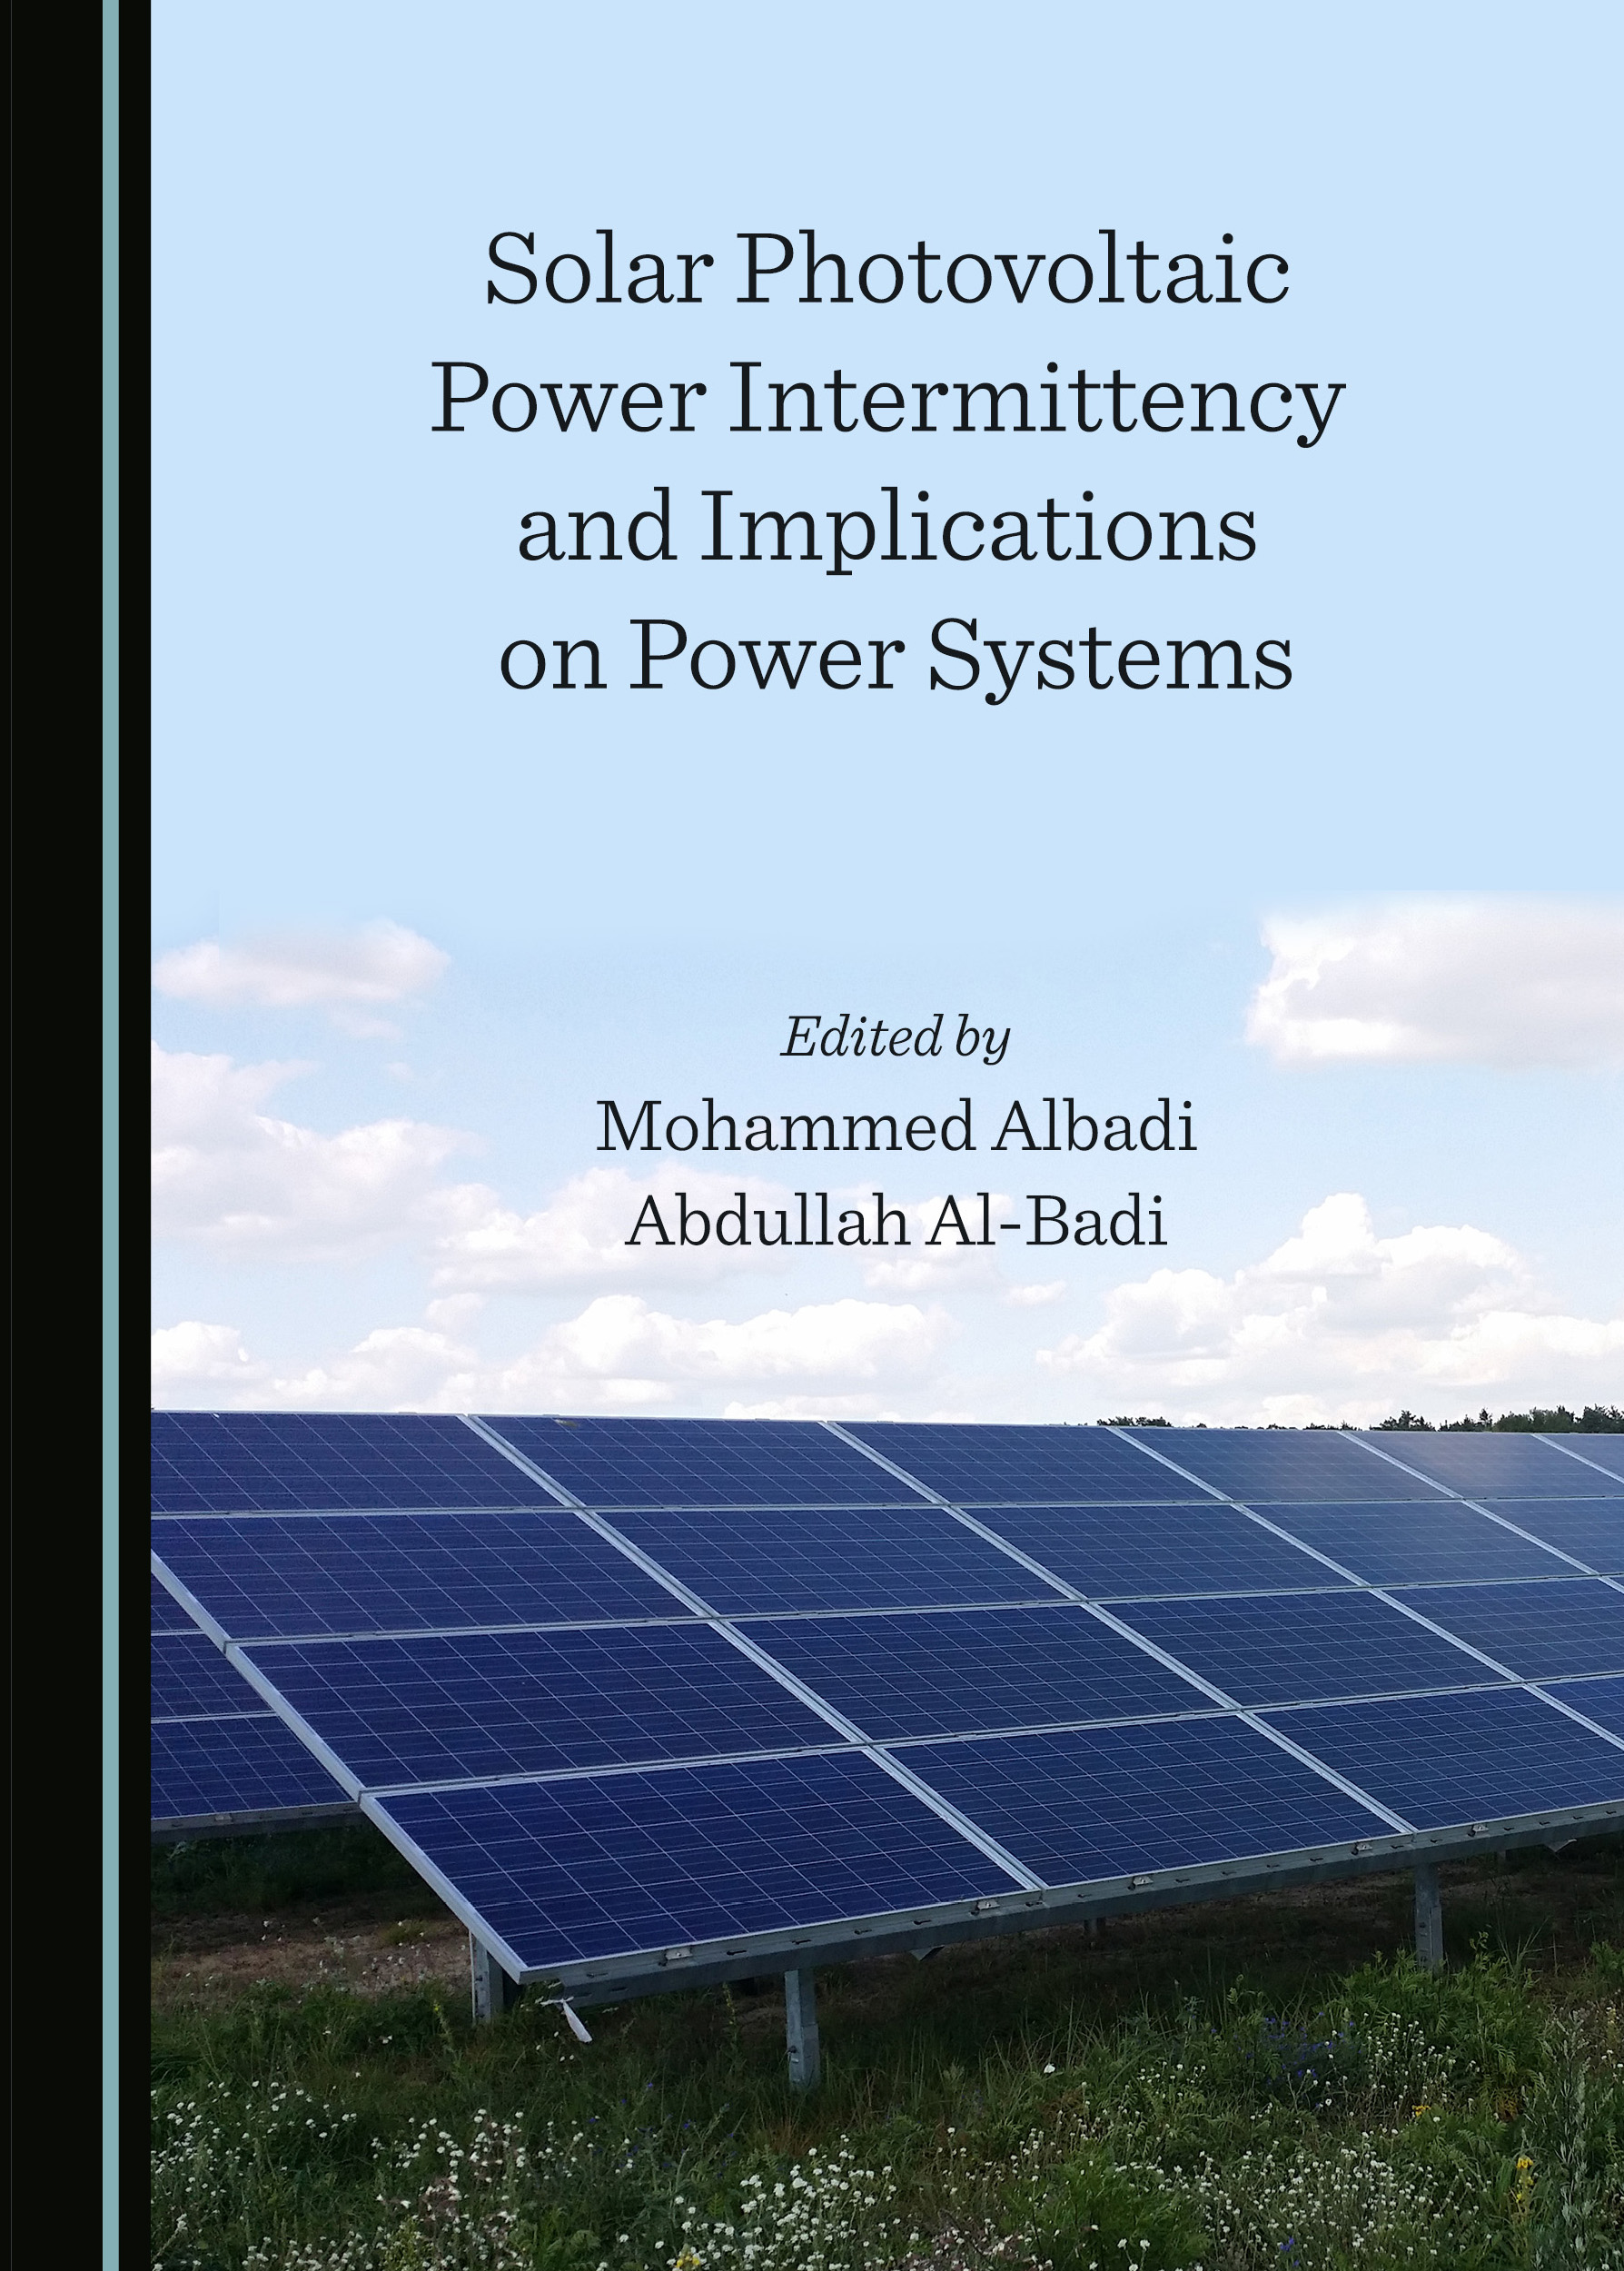 Solar Photovoltaic Power Intermittency and Implications on Power Systems